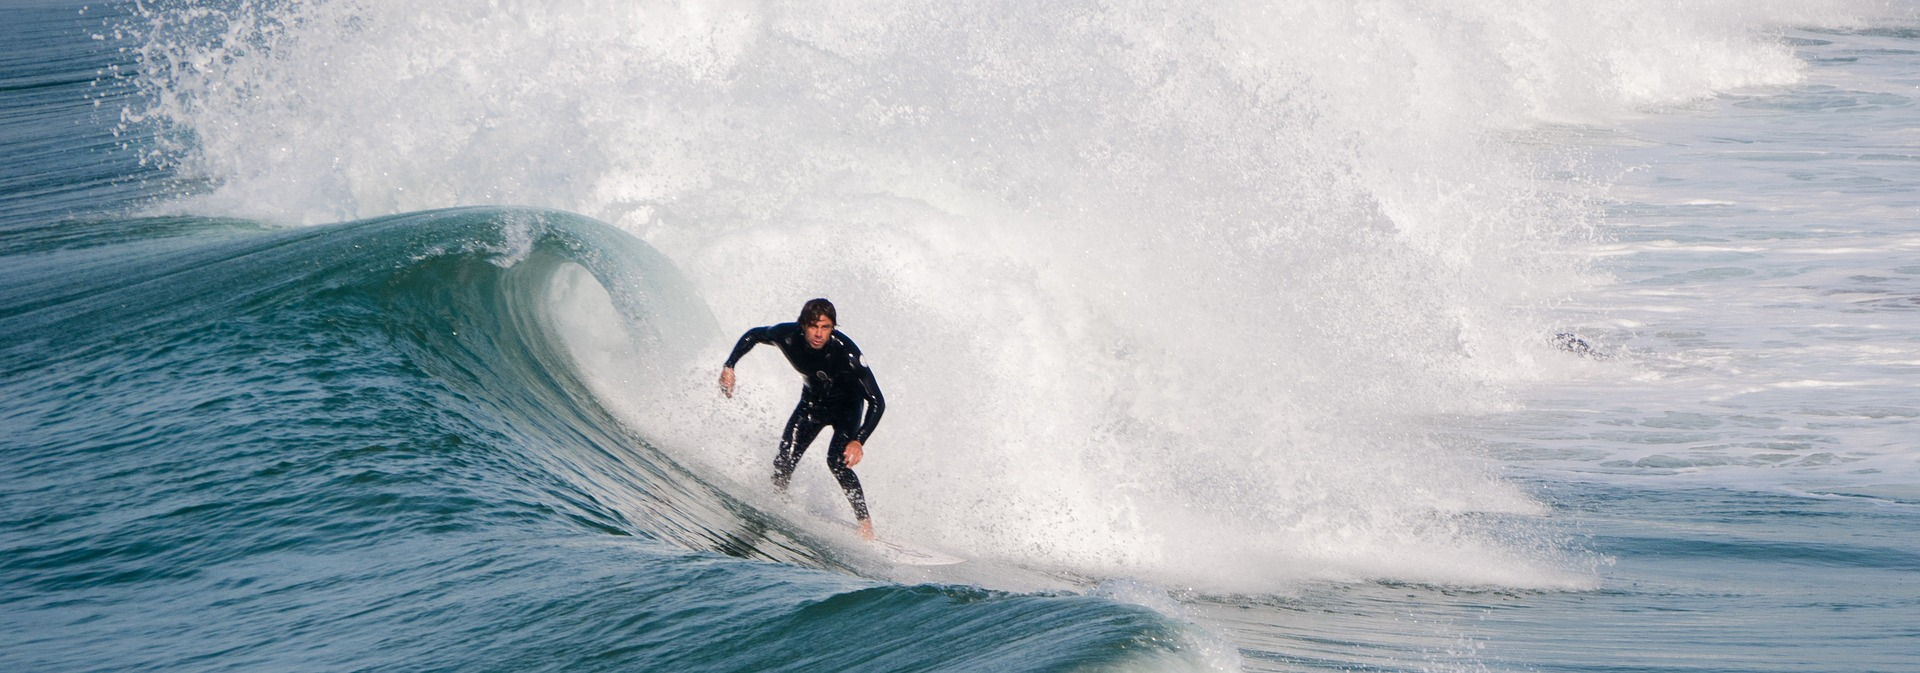 Surfing In Philippines: Experience The Best Waves